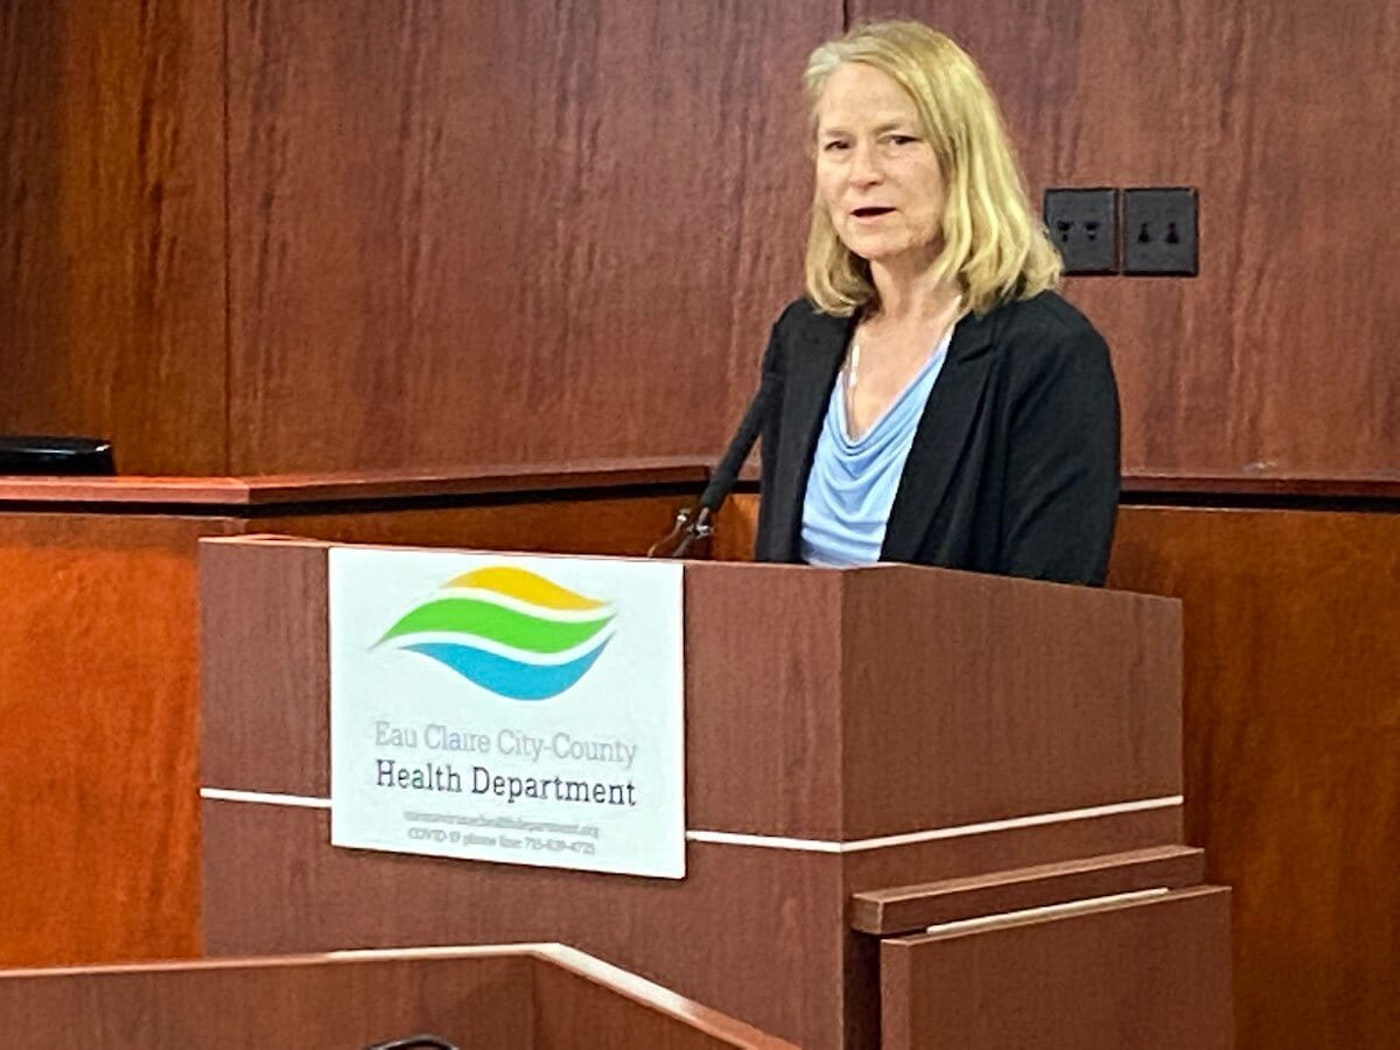 Lieske Giese, Eau Claire City-County Health Department director, said it is highly unlikely COVID-19 precautions will be lifted by Easter Sunday, April 12, as President Donald Trump said he would like to see happen. (Photo by Julian Emerson)